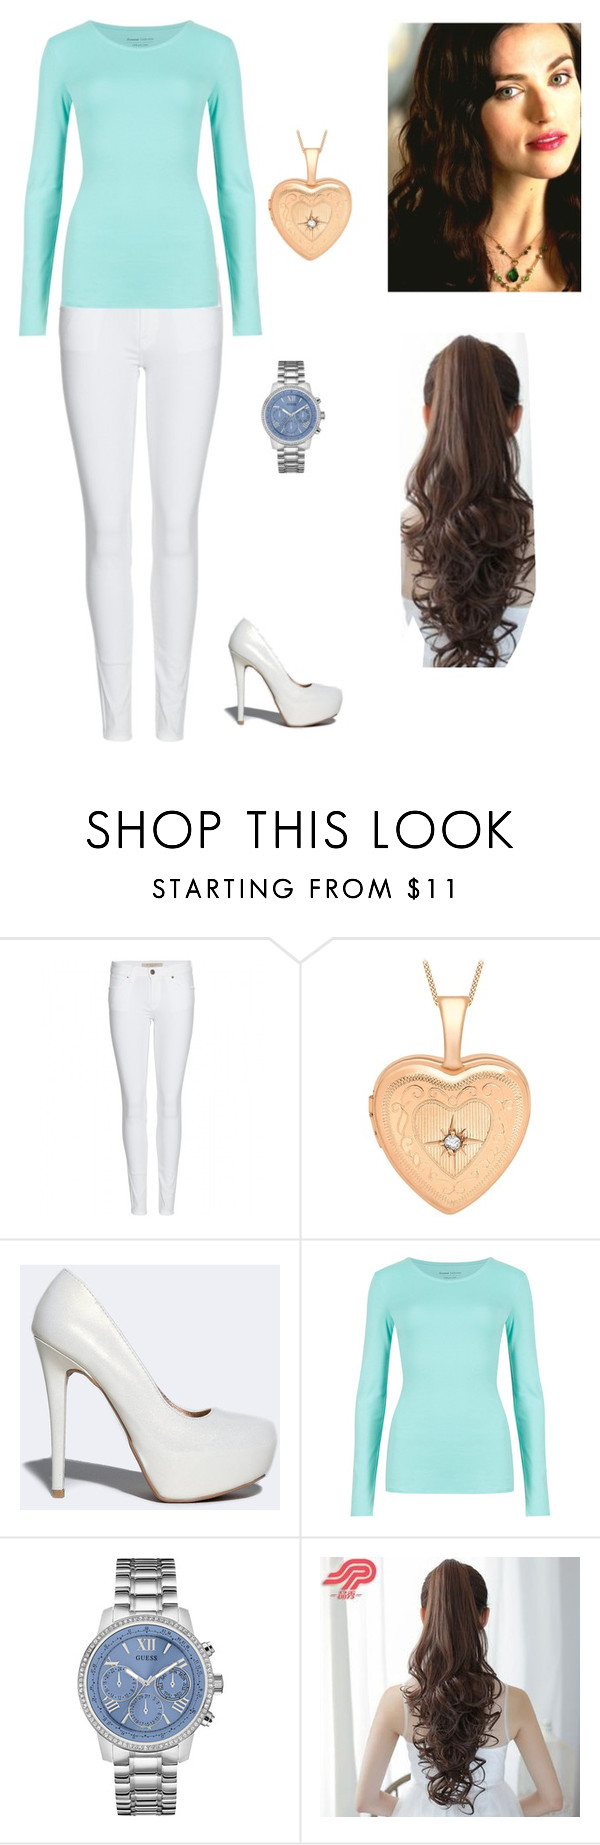 """Watchtower"" by agua12 ❤ liked on Polyvore featuring Burberry, Qupid, M&S Collection, GUESS, Pin Show, women's clothing, women's fashion, women, female and woman"